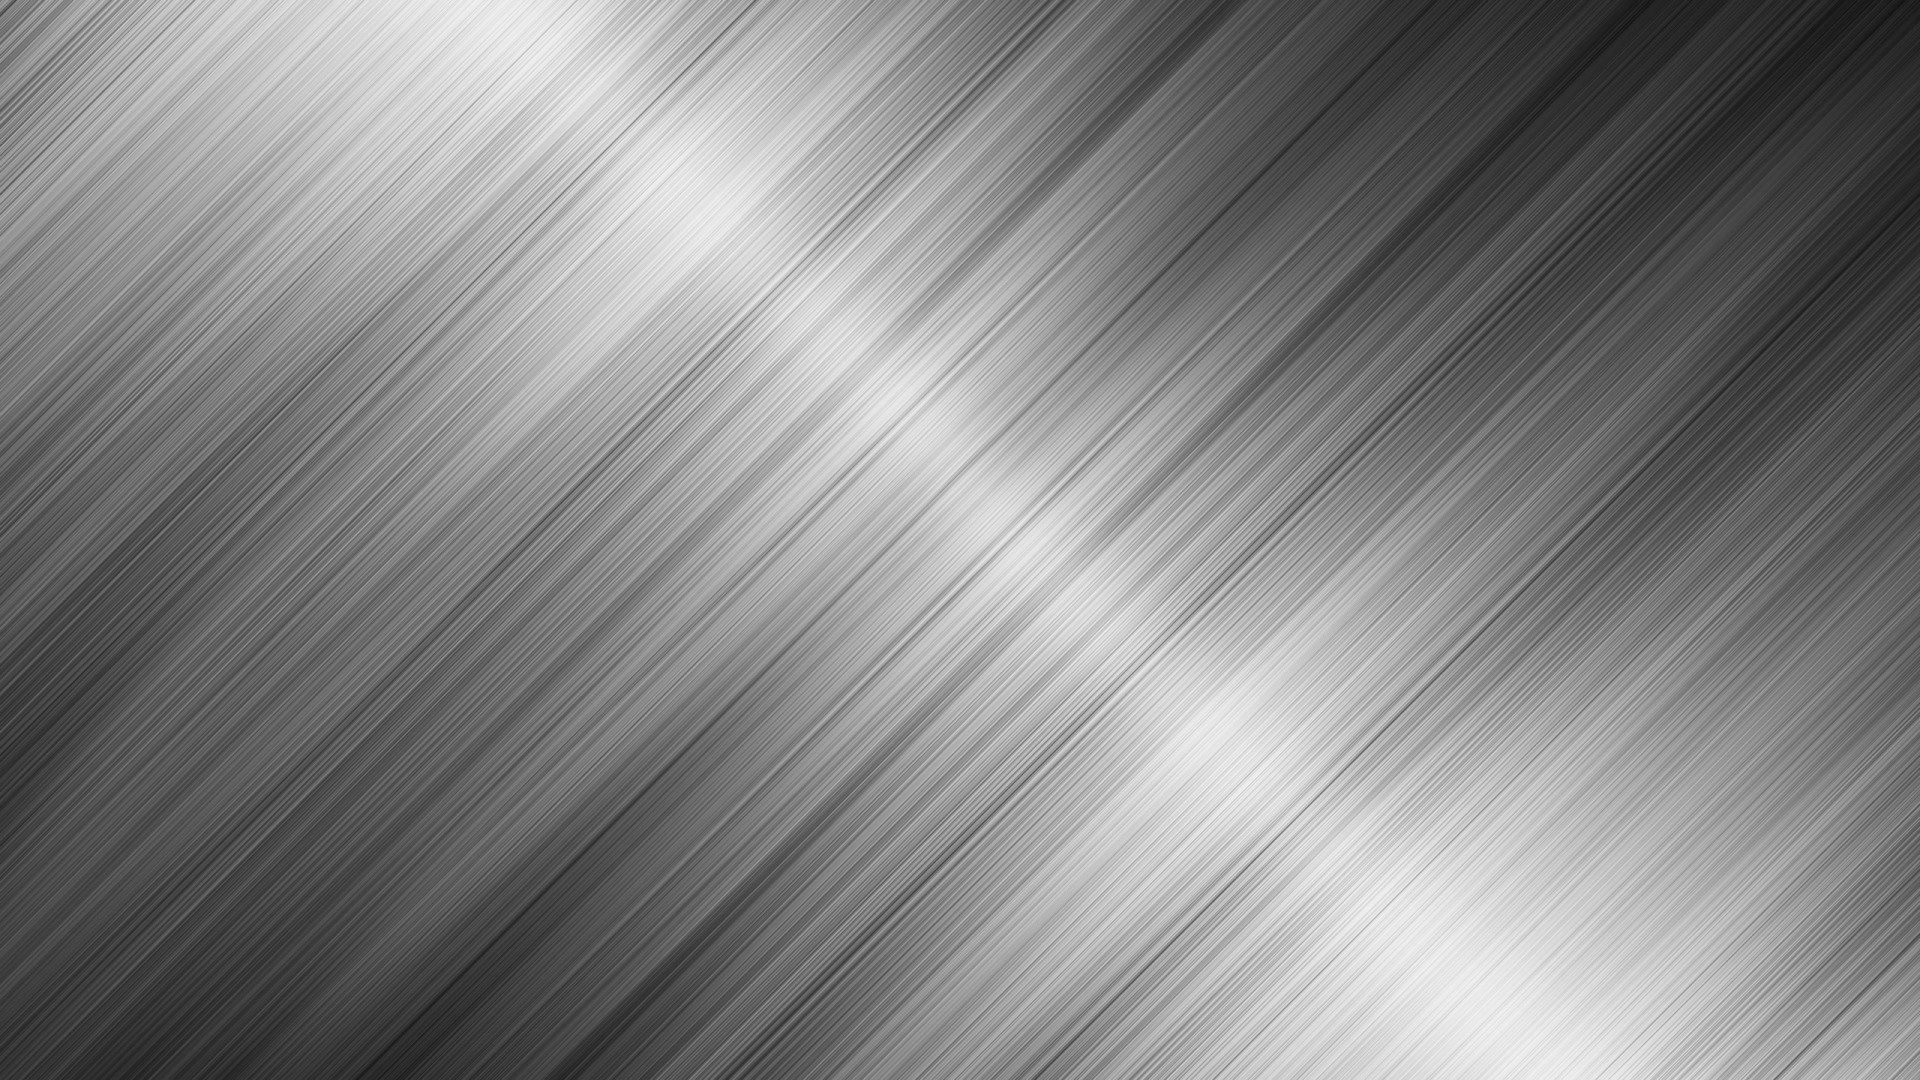 Preview wallpaper metal, lines, stripes, light, shiny, silver 1920×1080